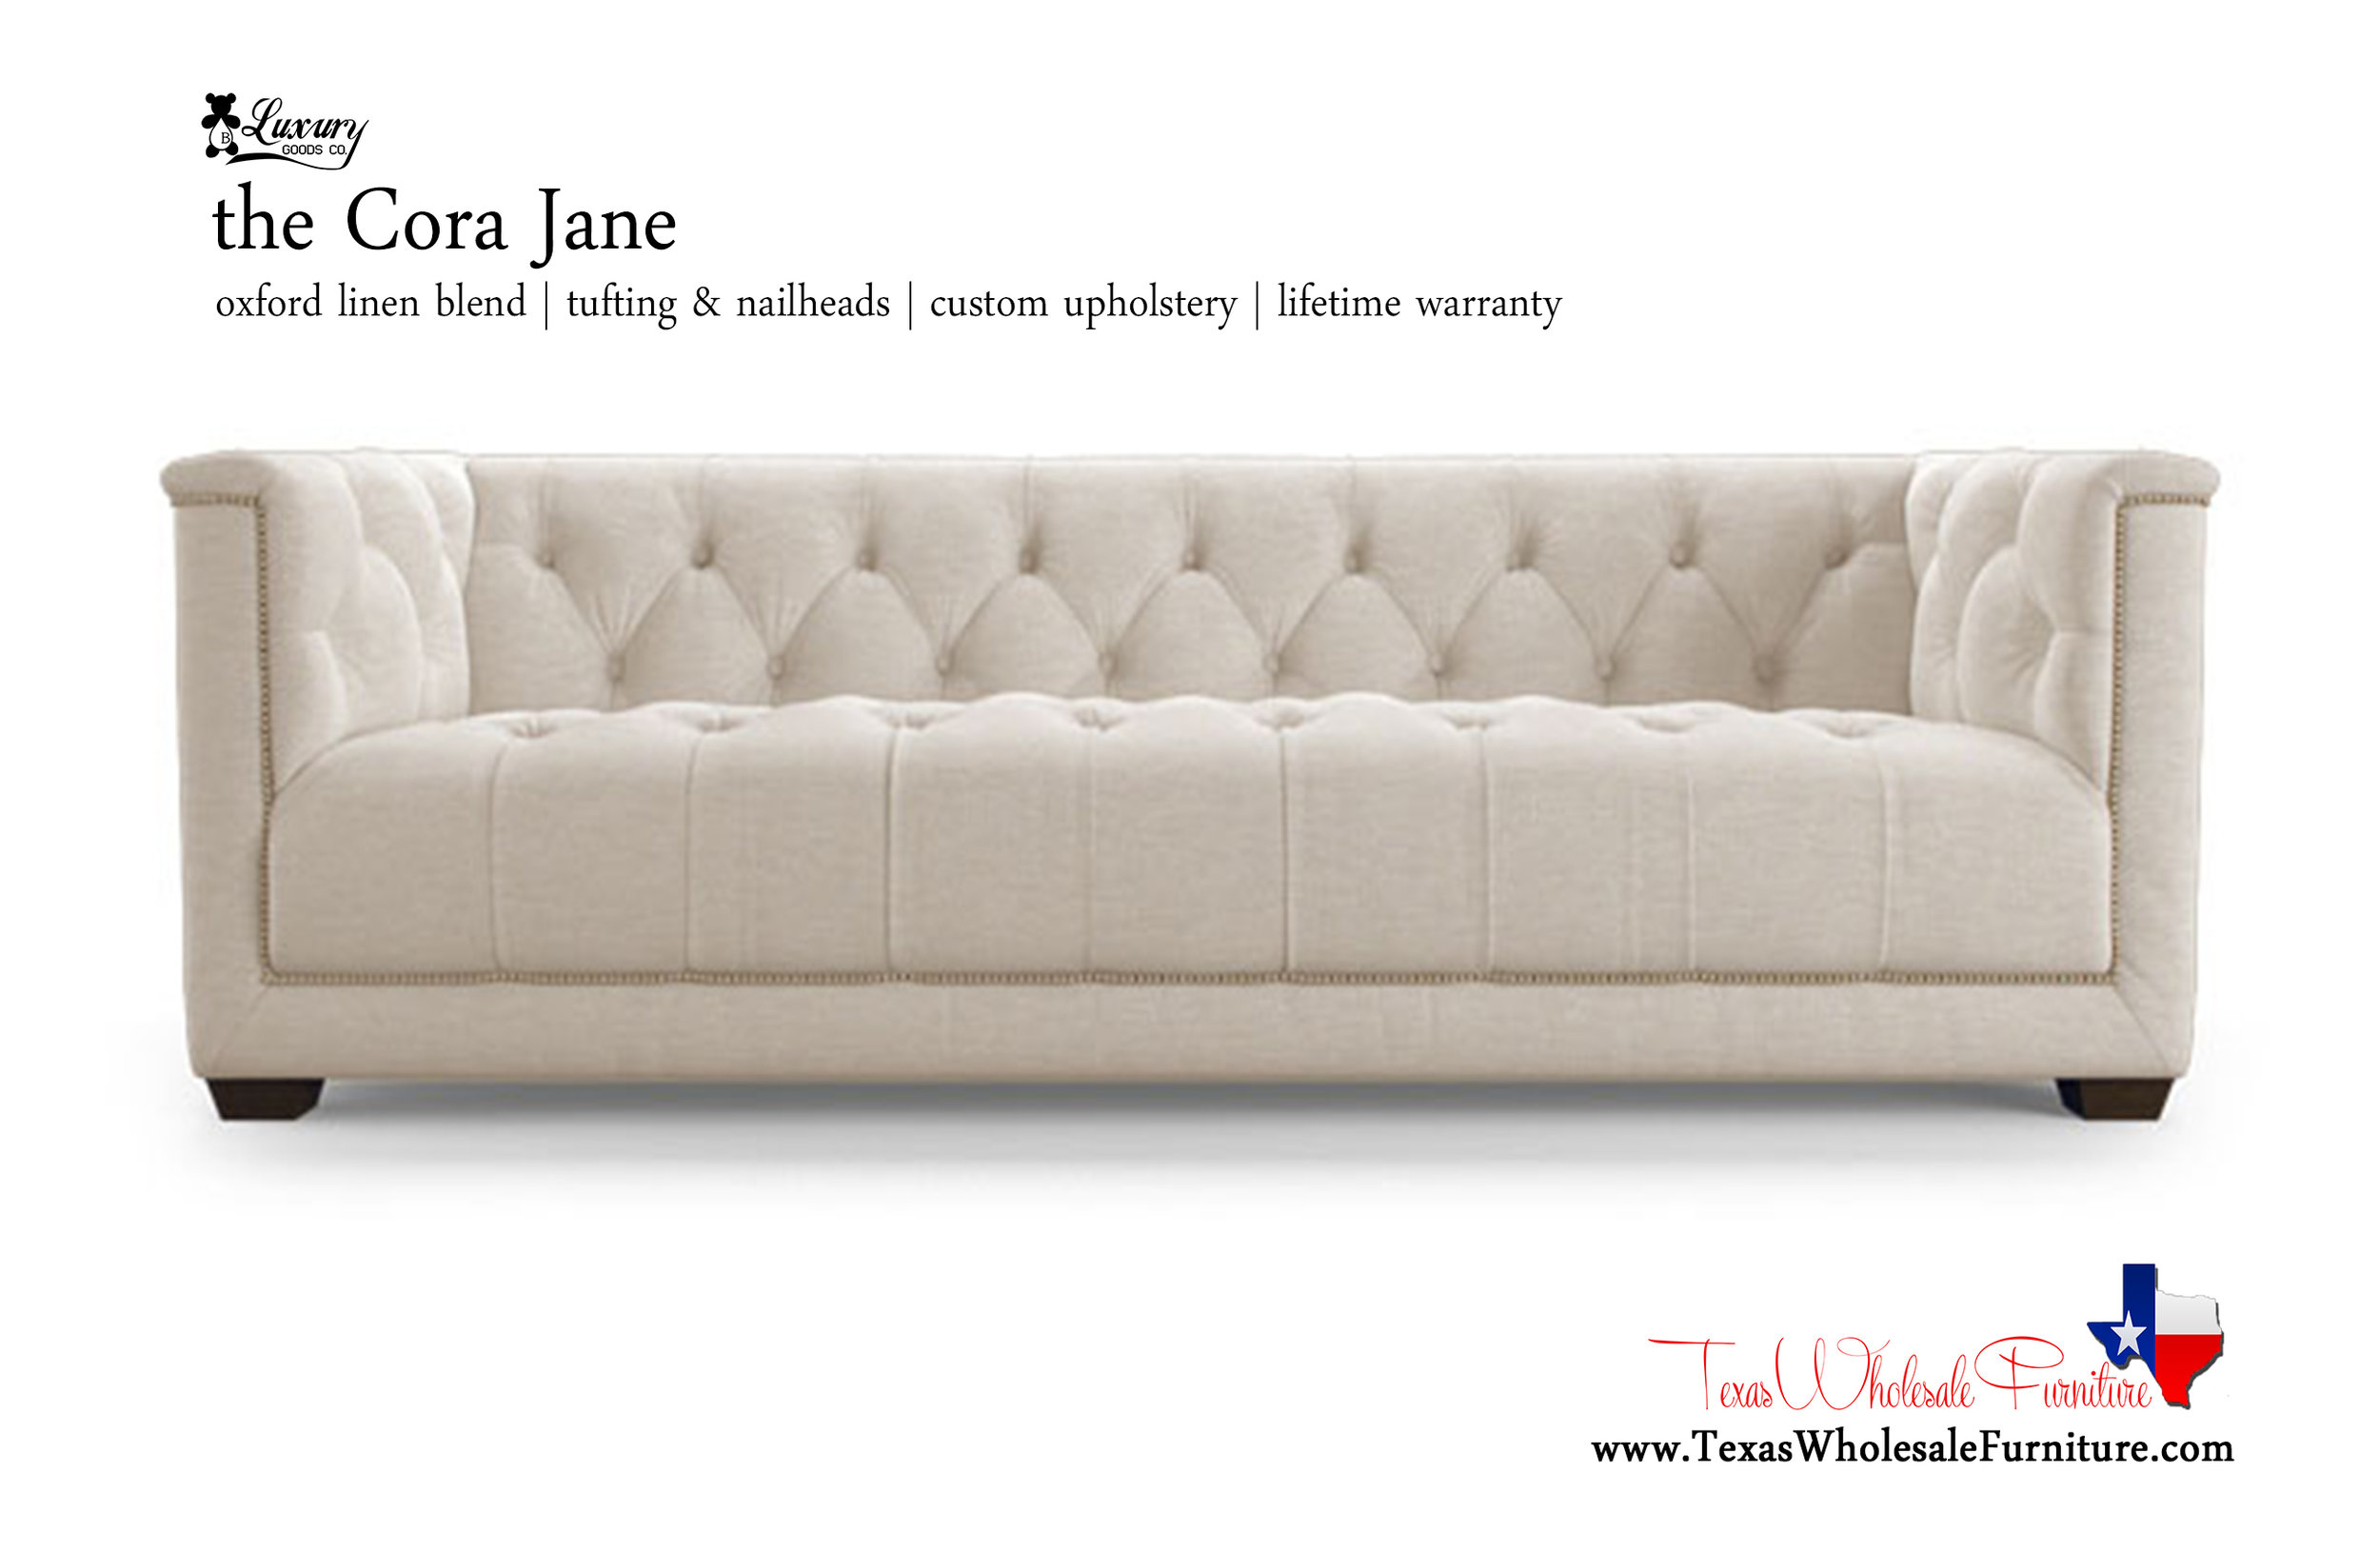 Sofa For Sale Houston Sofas Couches Texas Wholesale Furniture Co